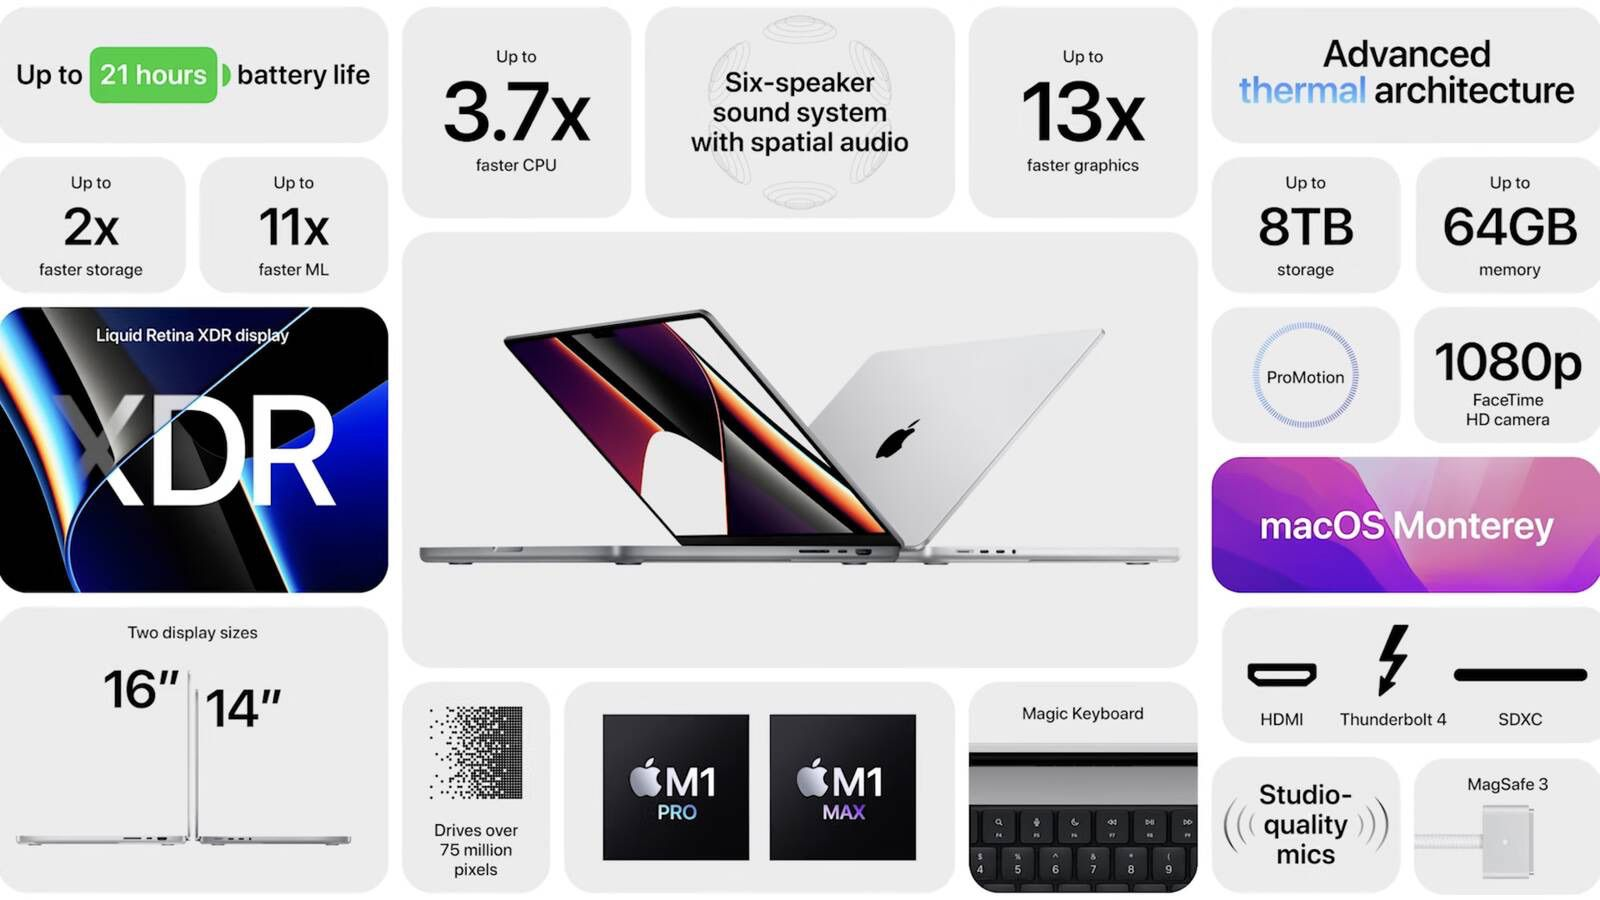 New MacBook Pros Offer Up to 10 Hours Longer Battery Life Than Prior-Generation